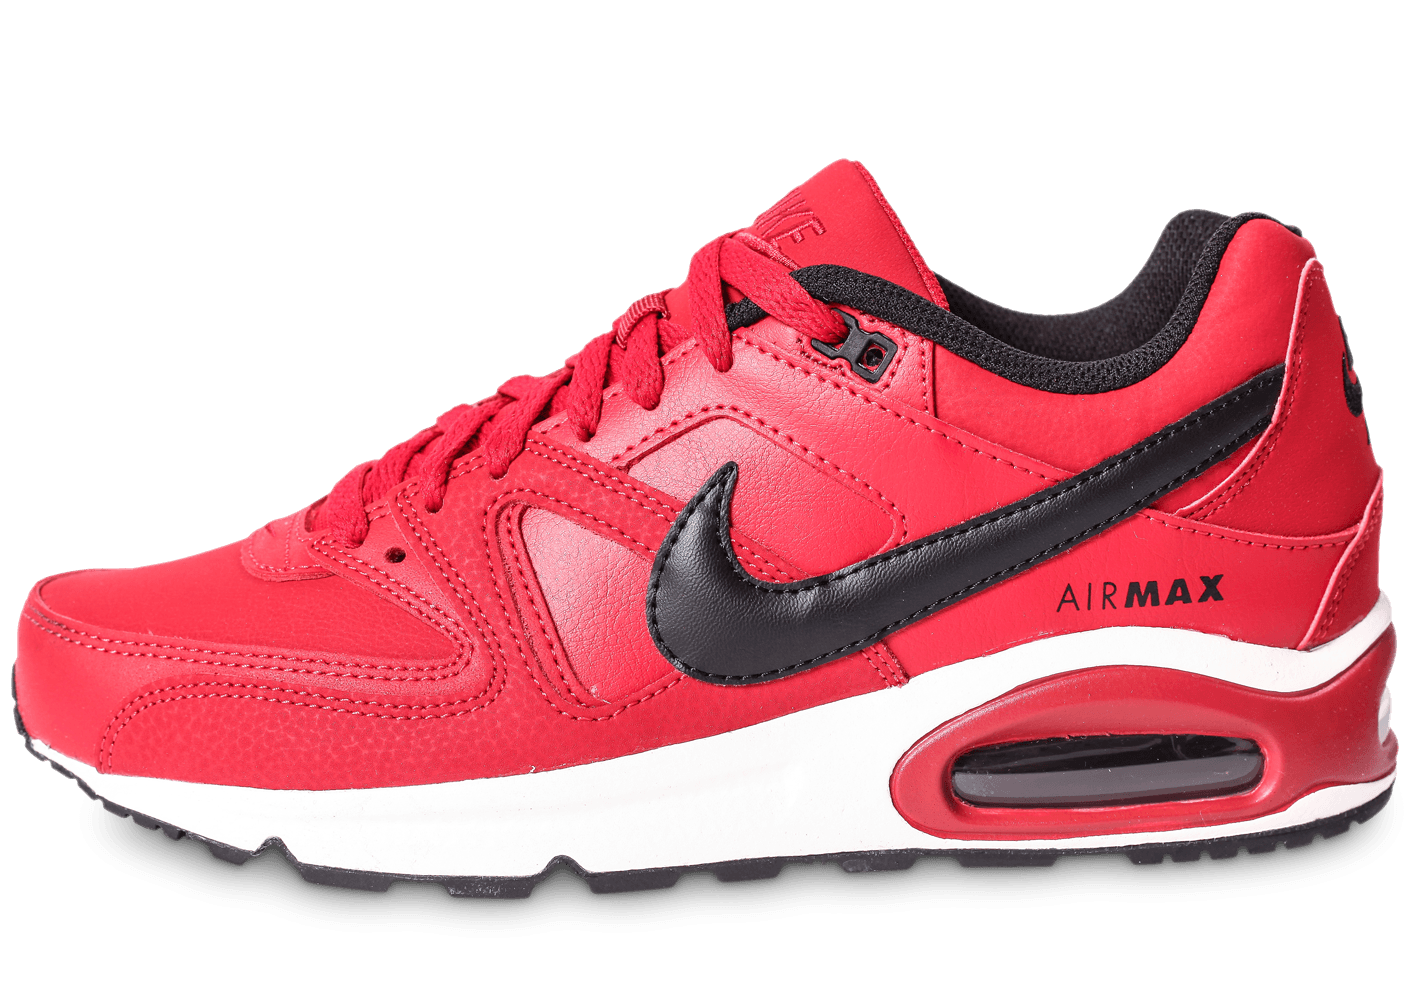 classic fit 2314b b2b23 Nike Air Max Command Leather rouge et noire - Chaussures Baskets homme -  Chausport